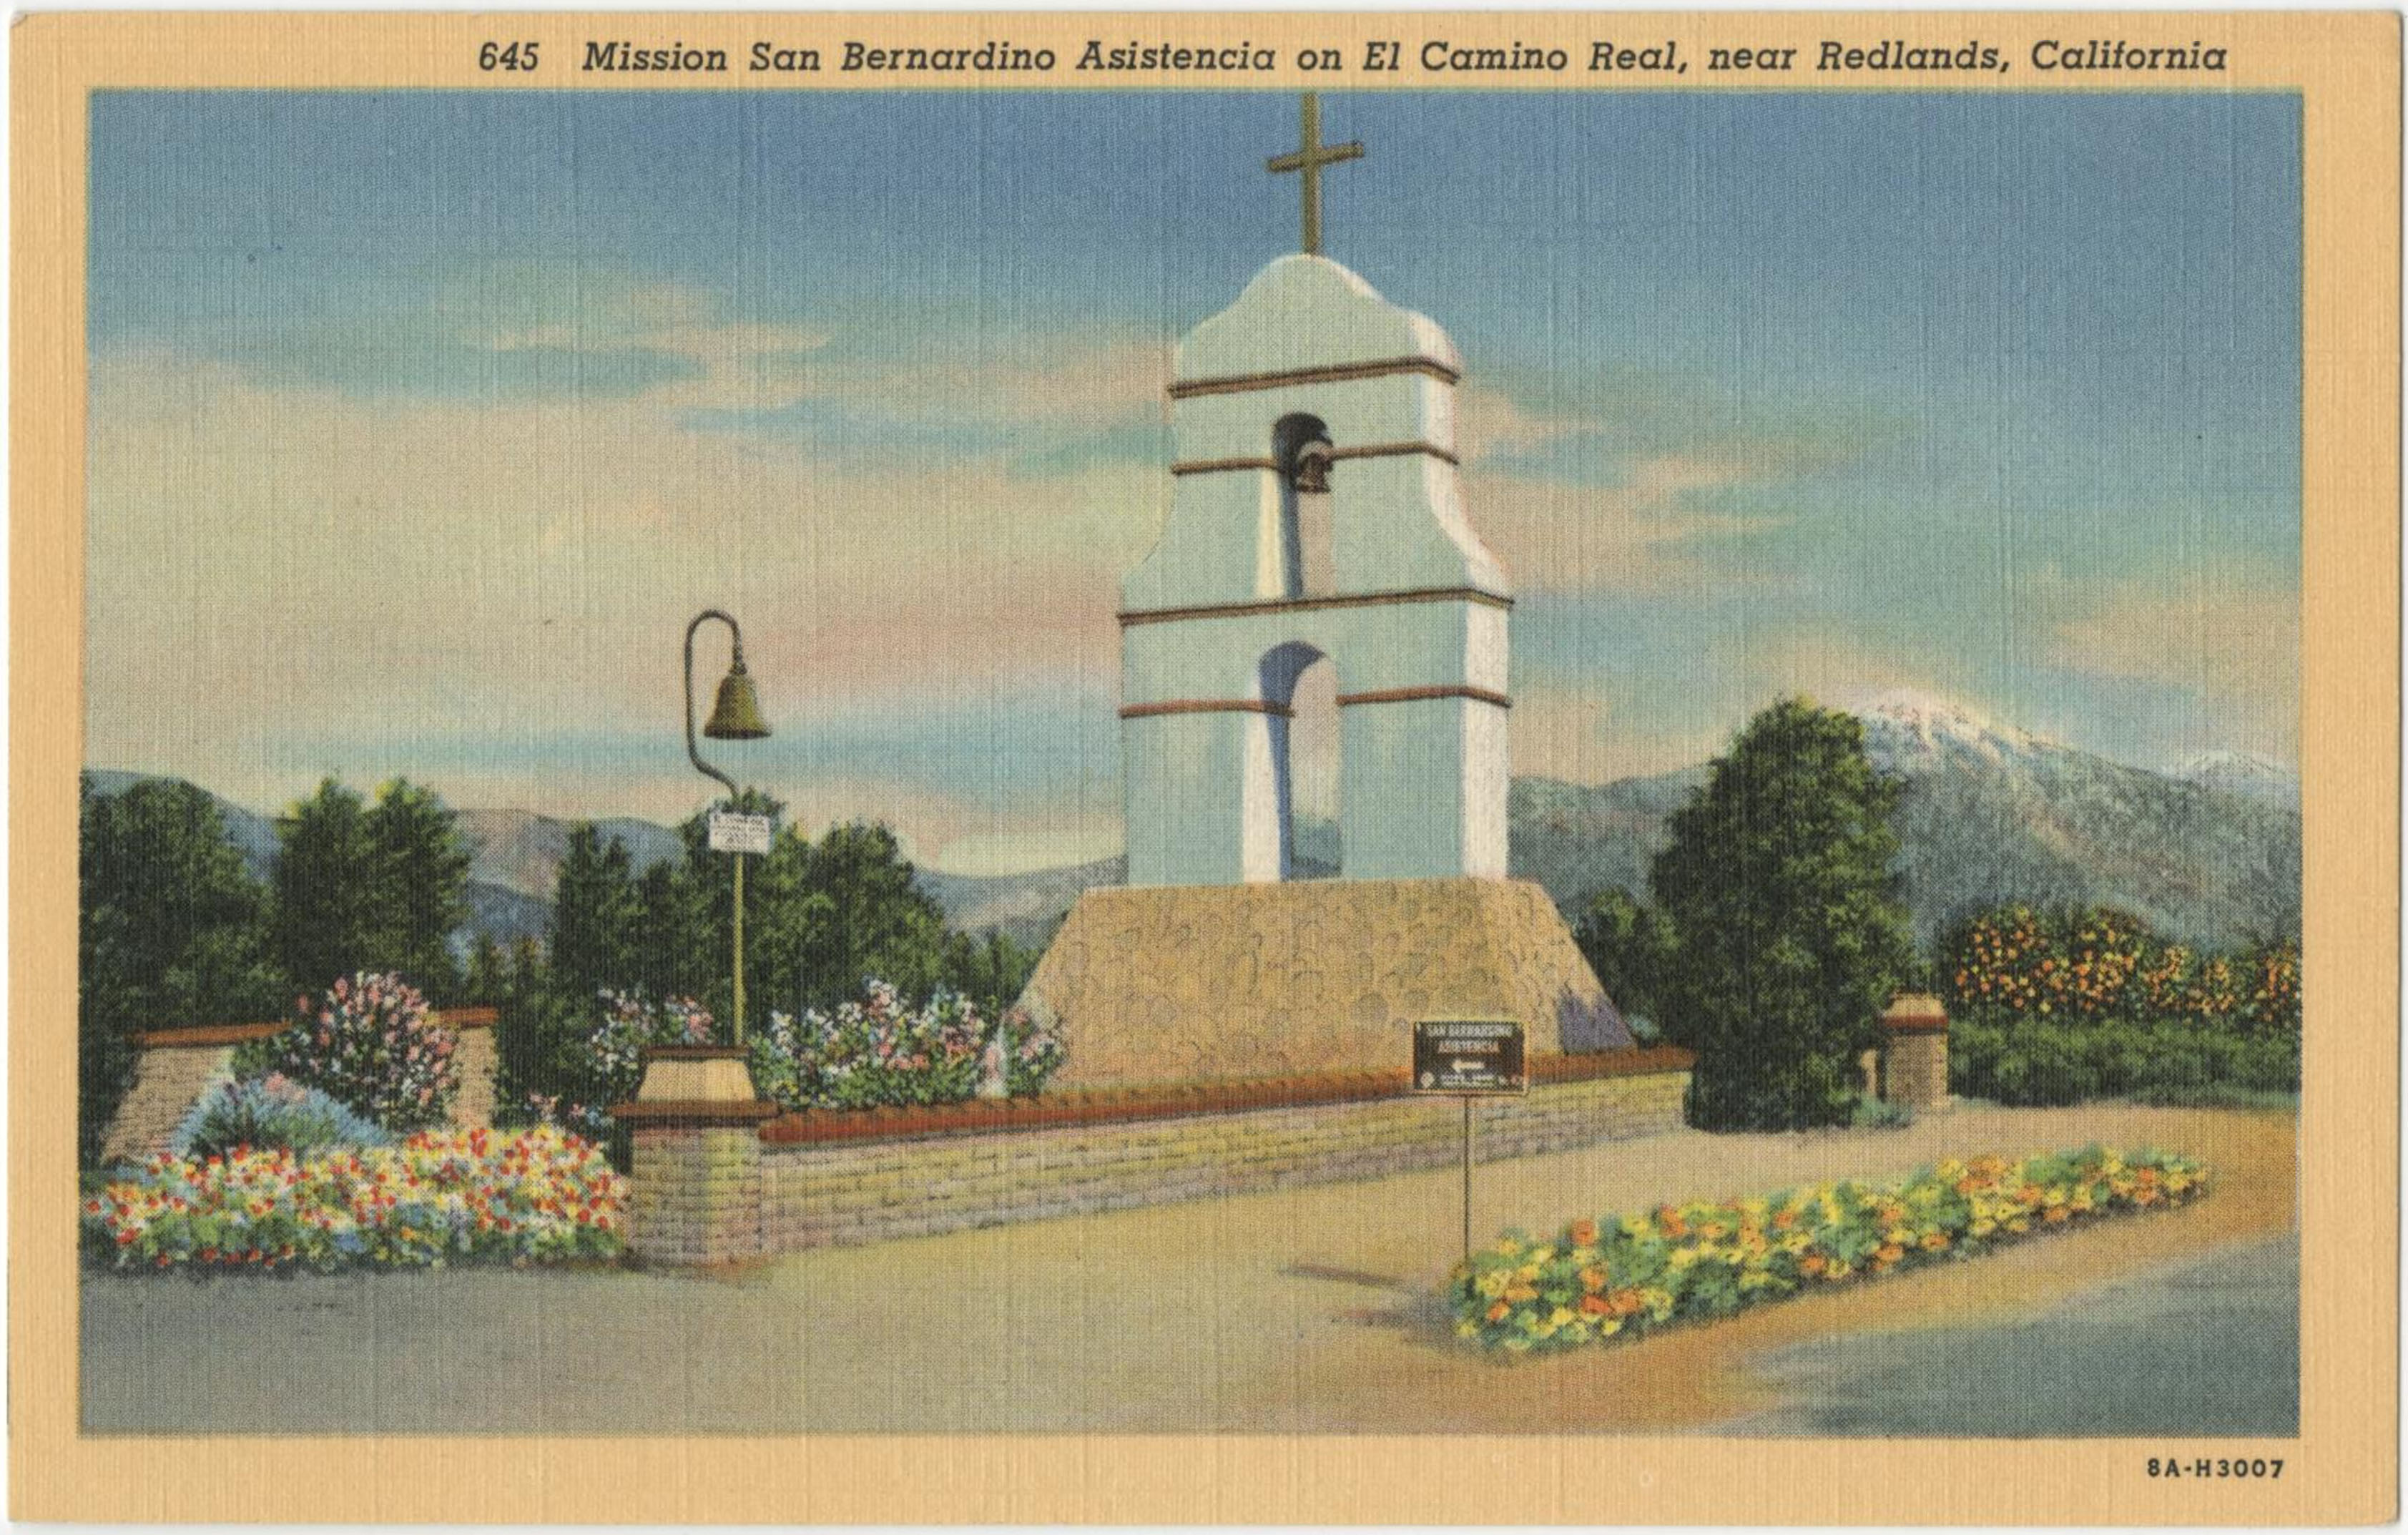 1938 postcard of Mission San Bernardino Asistencia on El Camino Real, near Redlands, California